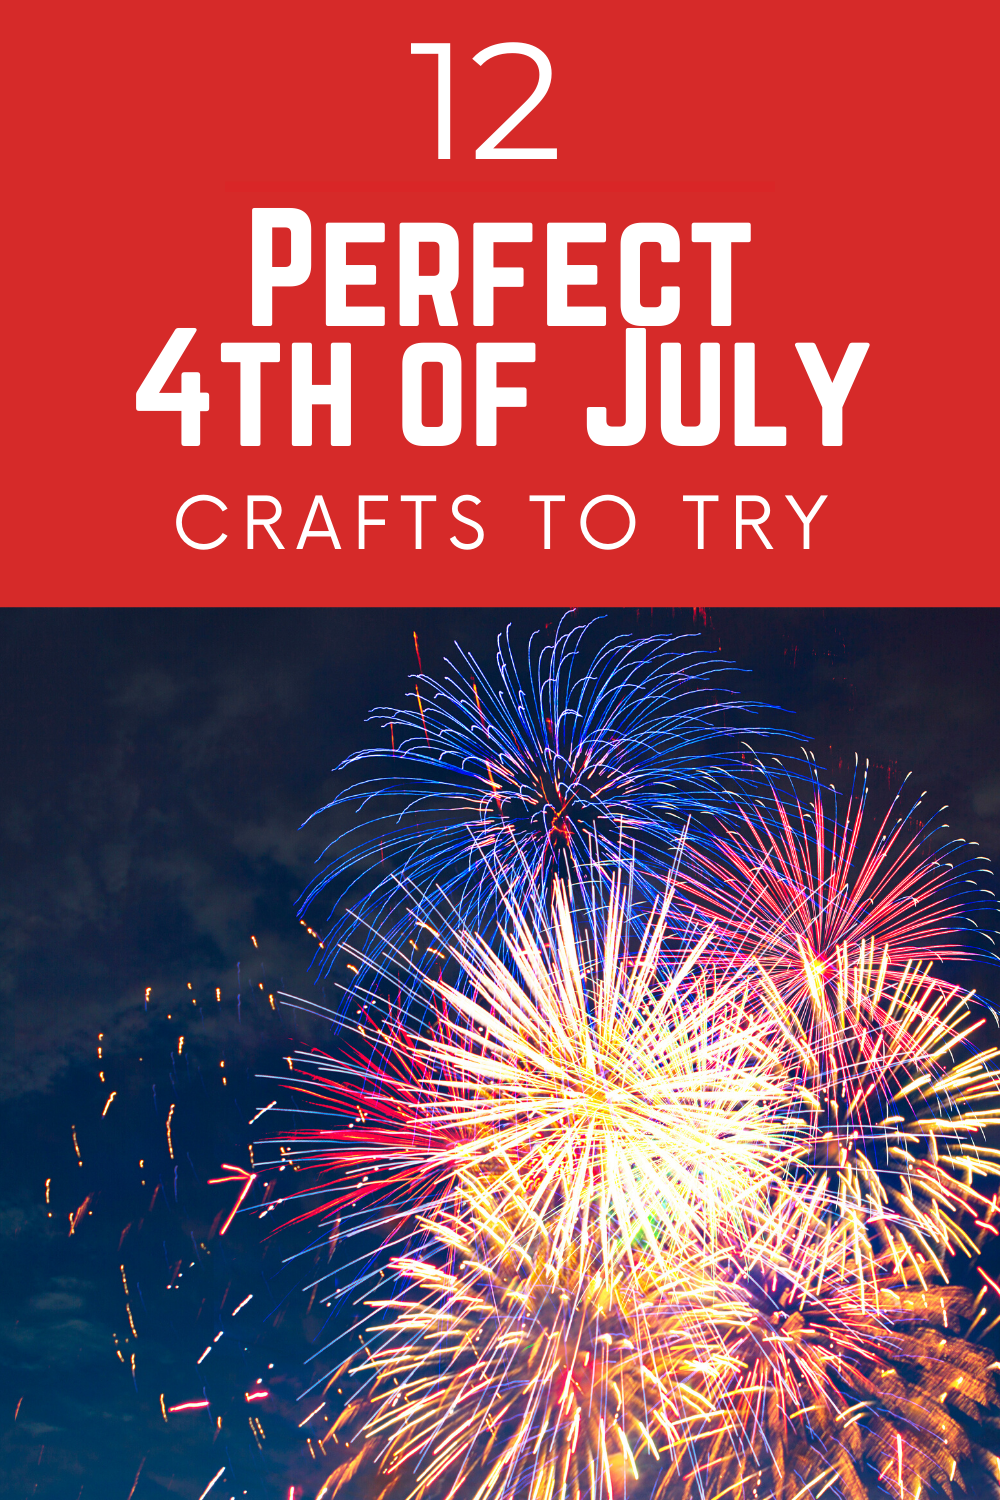 Here Are 12 Perfect 4th Of July Crafts To Try July Crafts Fireworks Craft For Kids Fireworks Craft